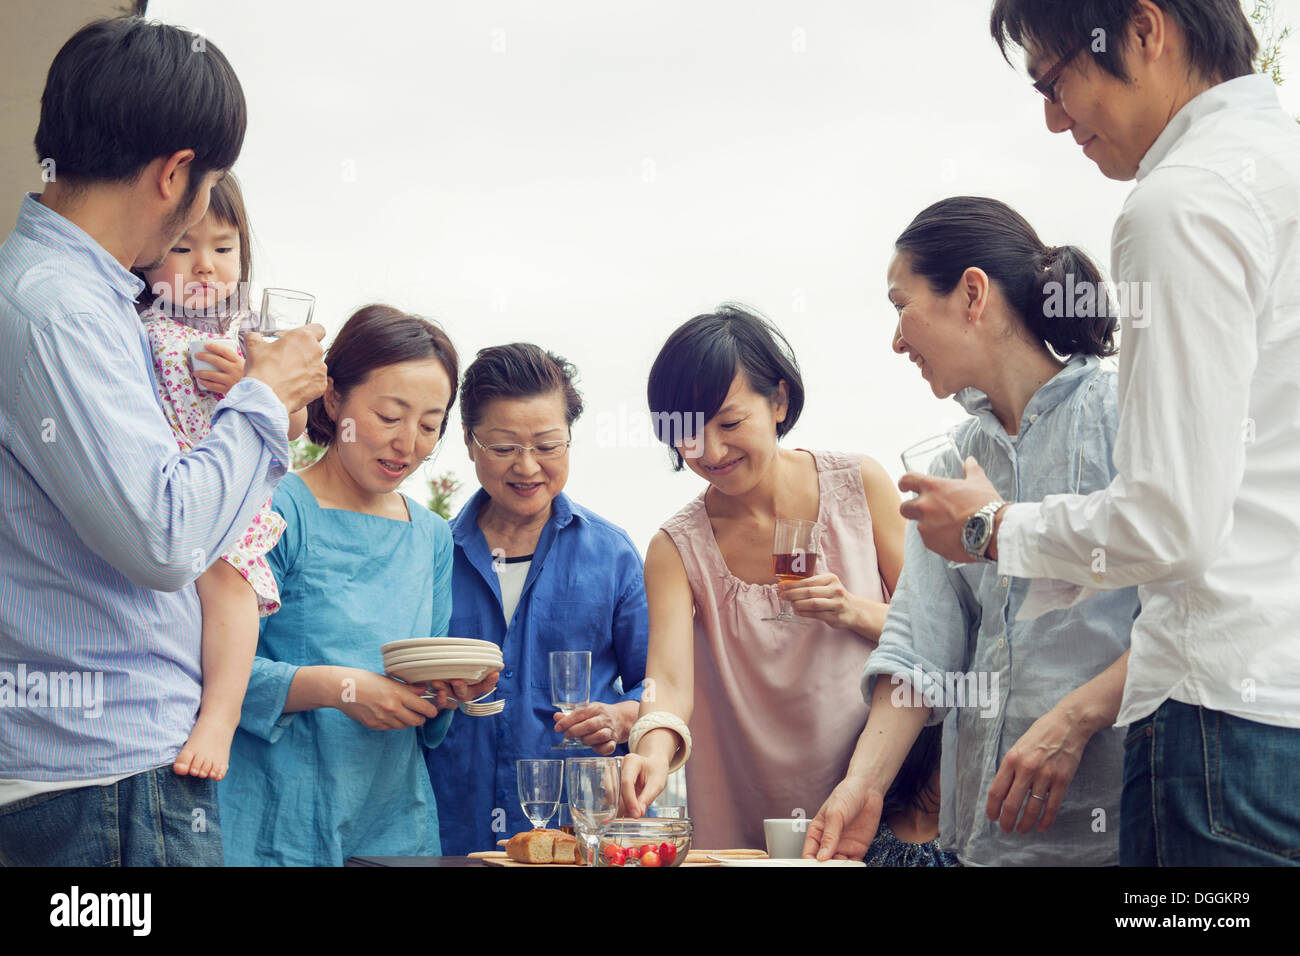 Three generation family eating meal outdoors - Stock Image